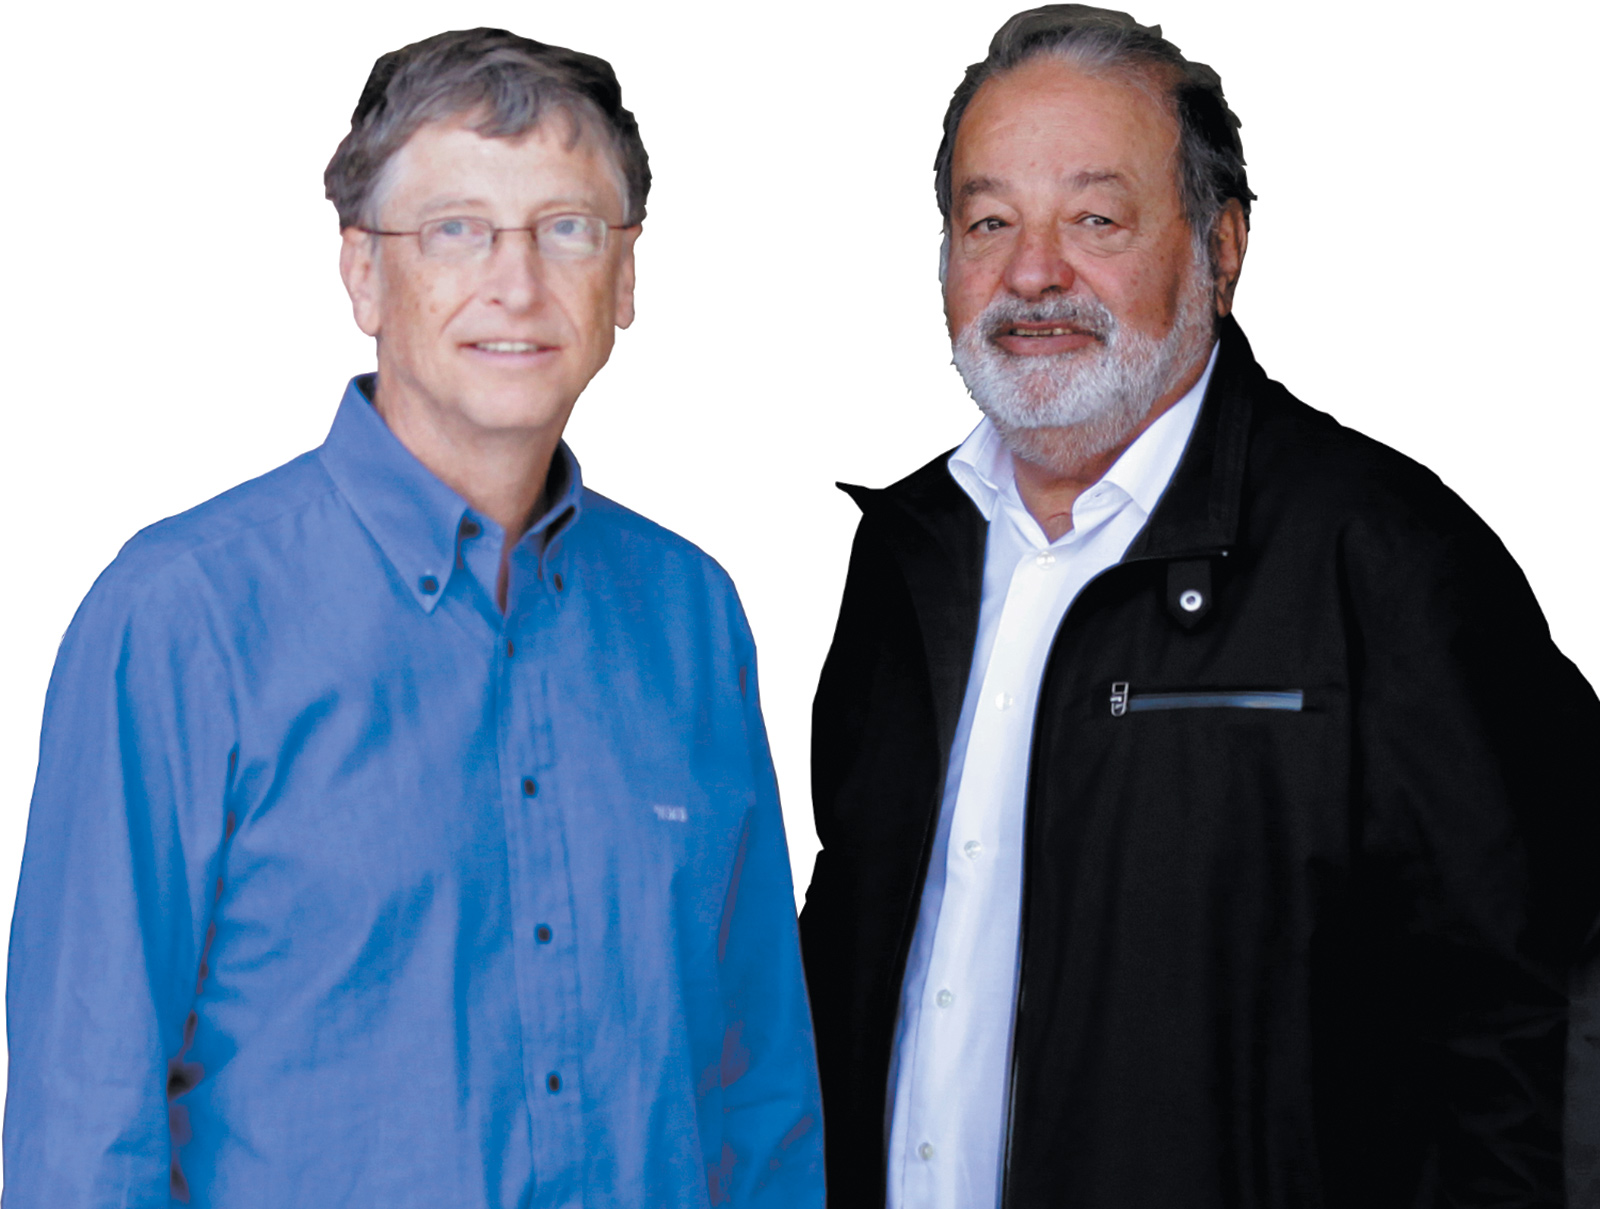 Billionaires Bill Gates and Carlos Slim at the opening of a new research facility for the International Maize and Wheat Improvement Center, Texcoco, Mexico, February 2013